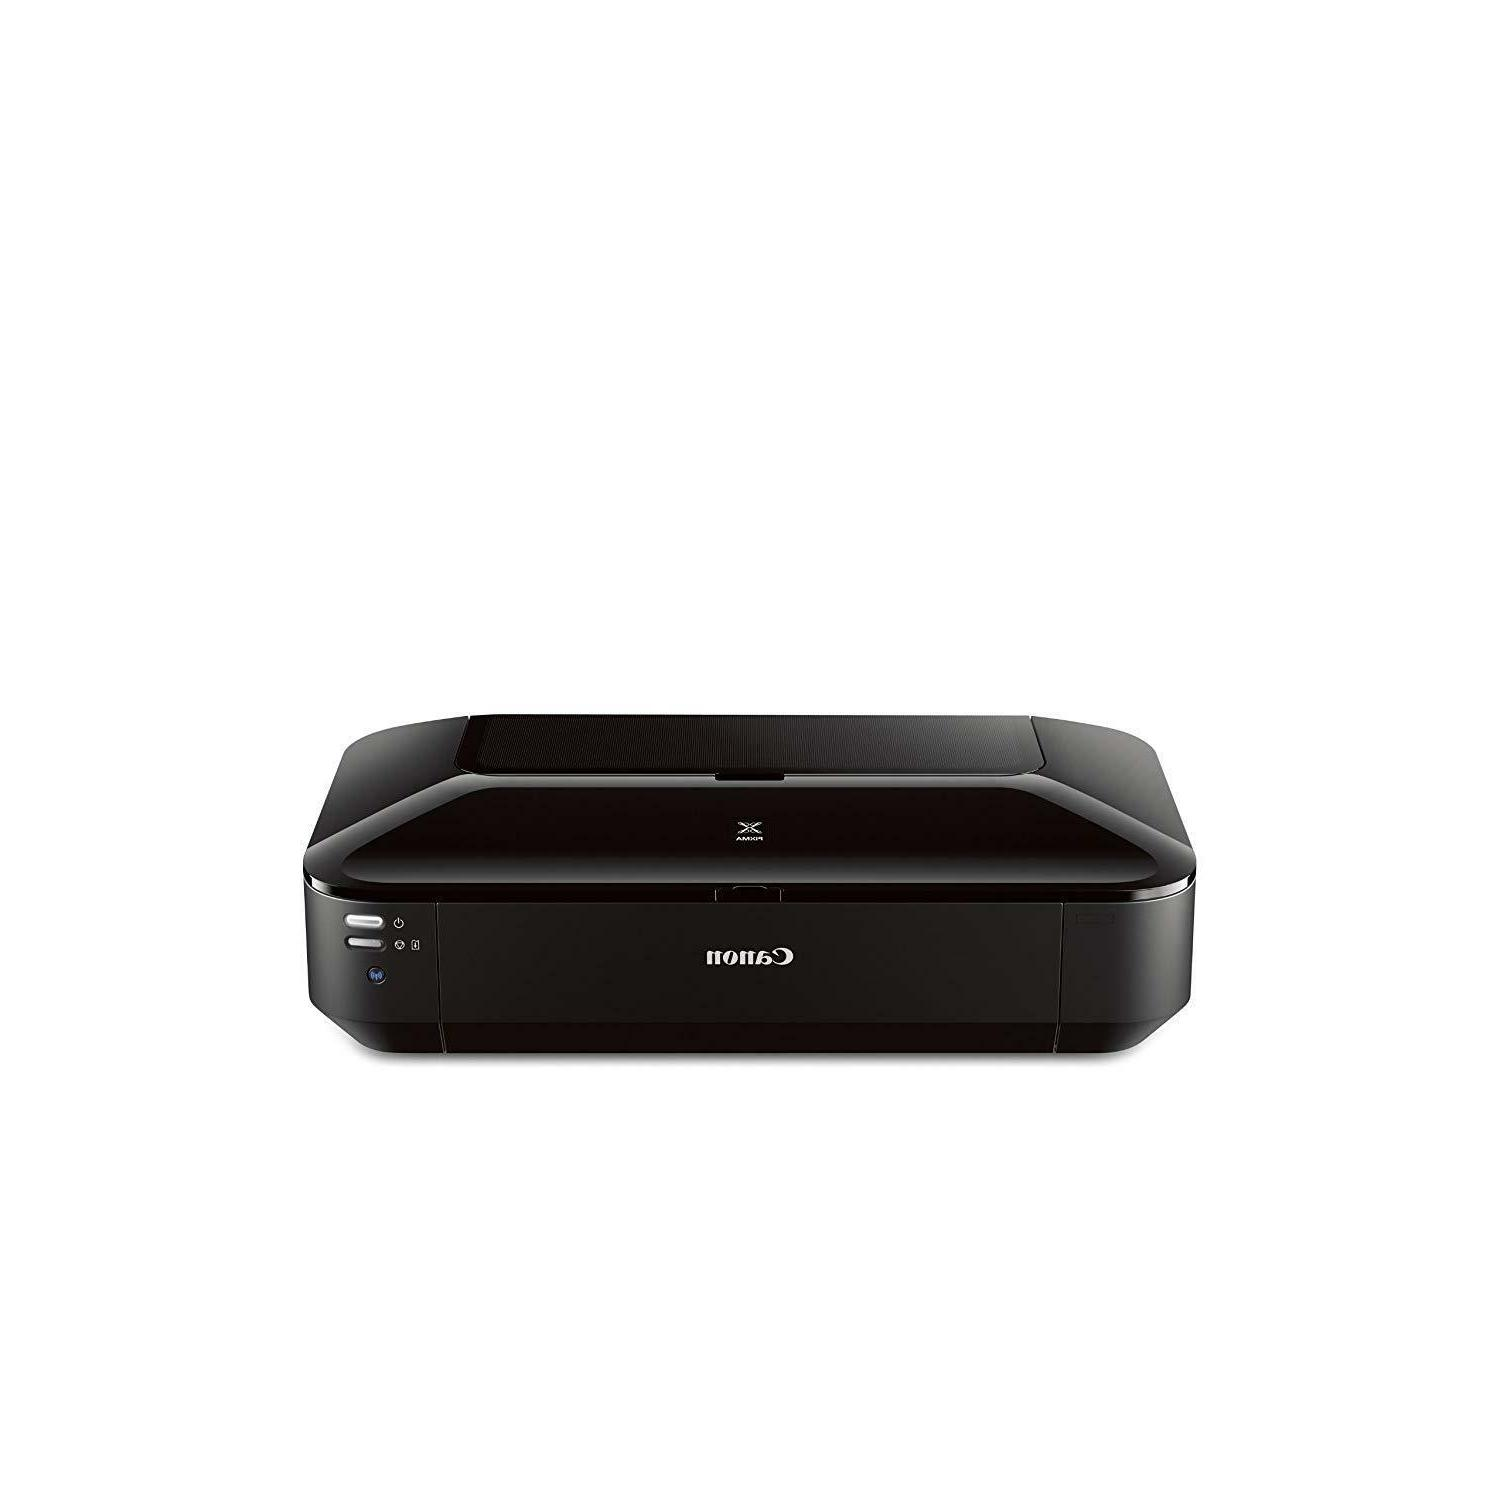 CANON Business Printer and Cloud Compatible,